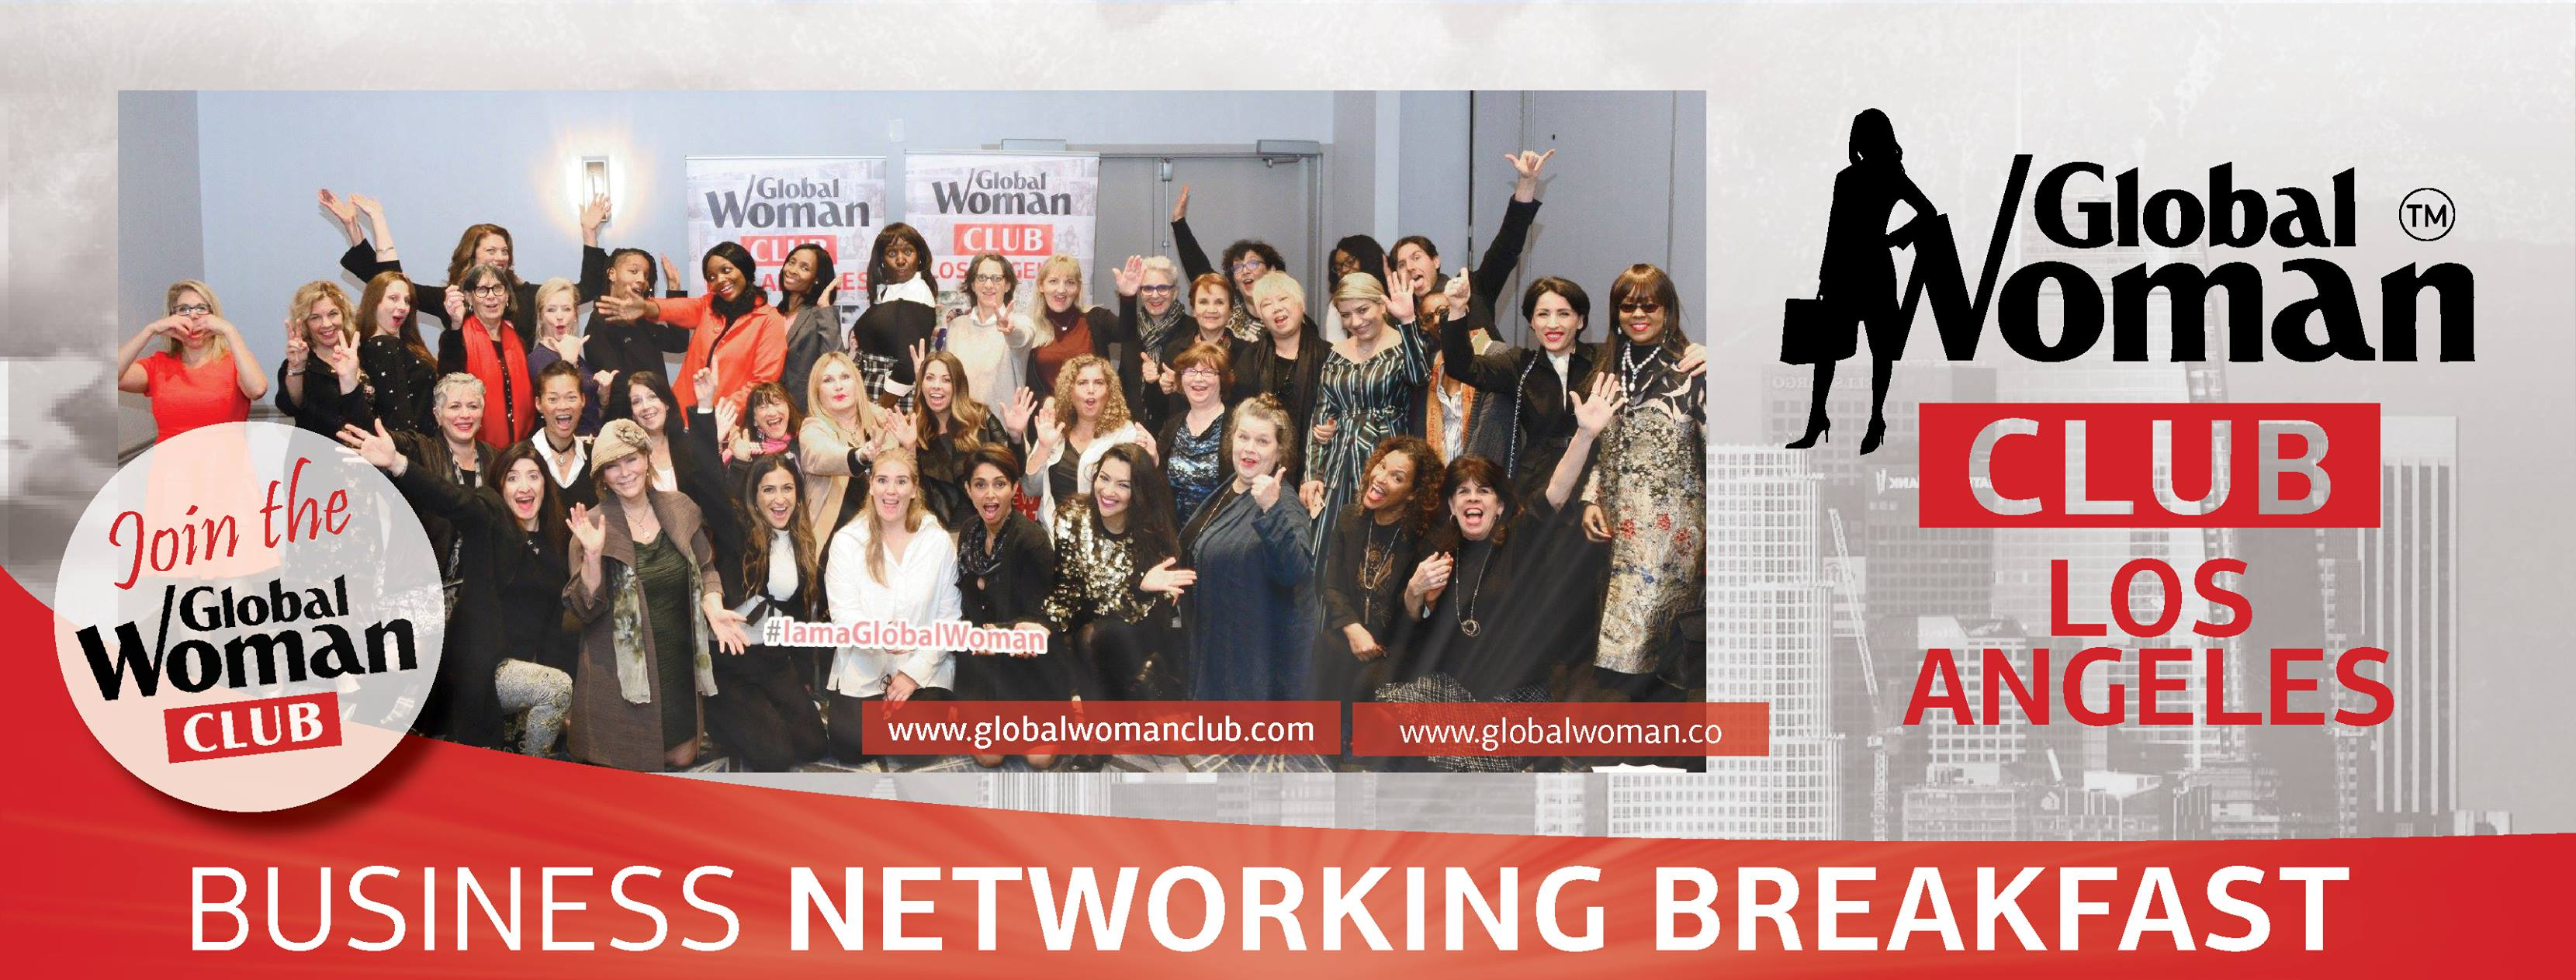 GLOBAL WOMAN CLUB Los Angeles : BUSINESS NETWORKING MEETING - January